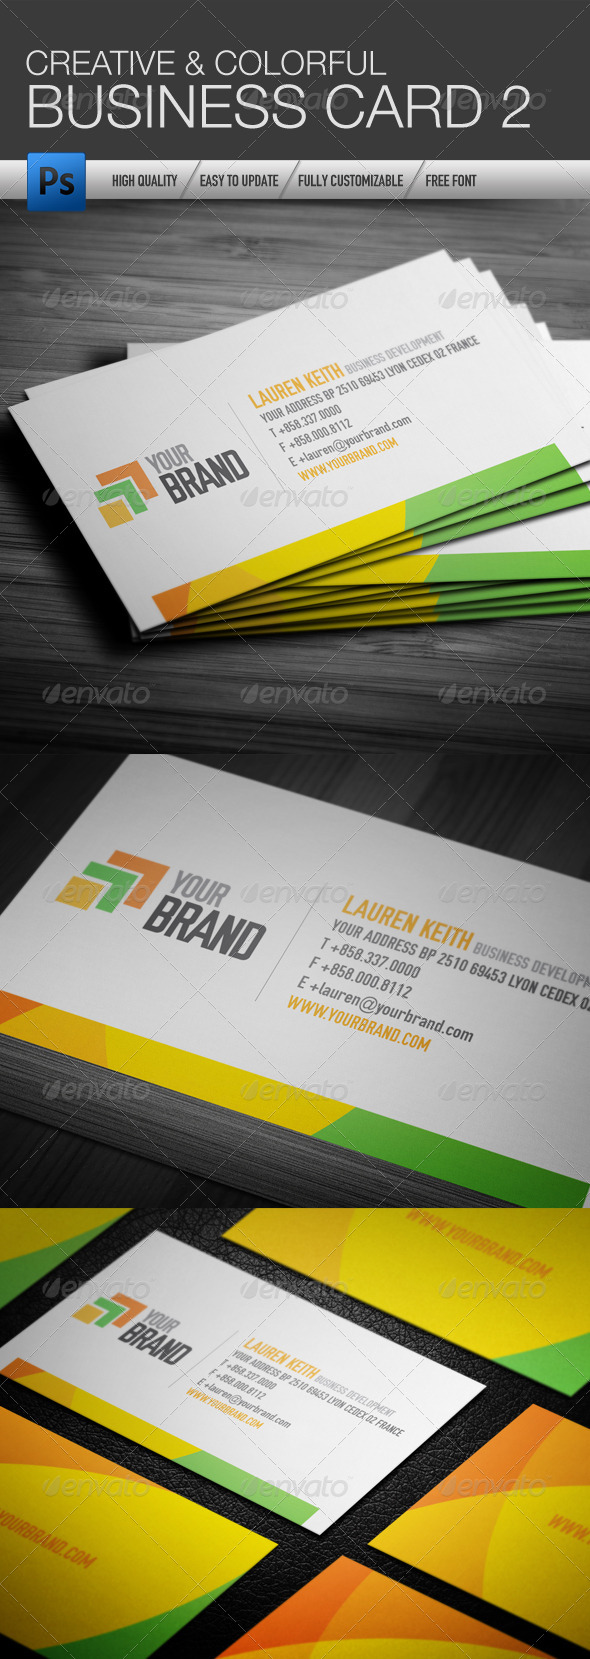 Creative and Colorful Business Card 2